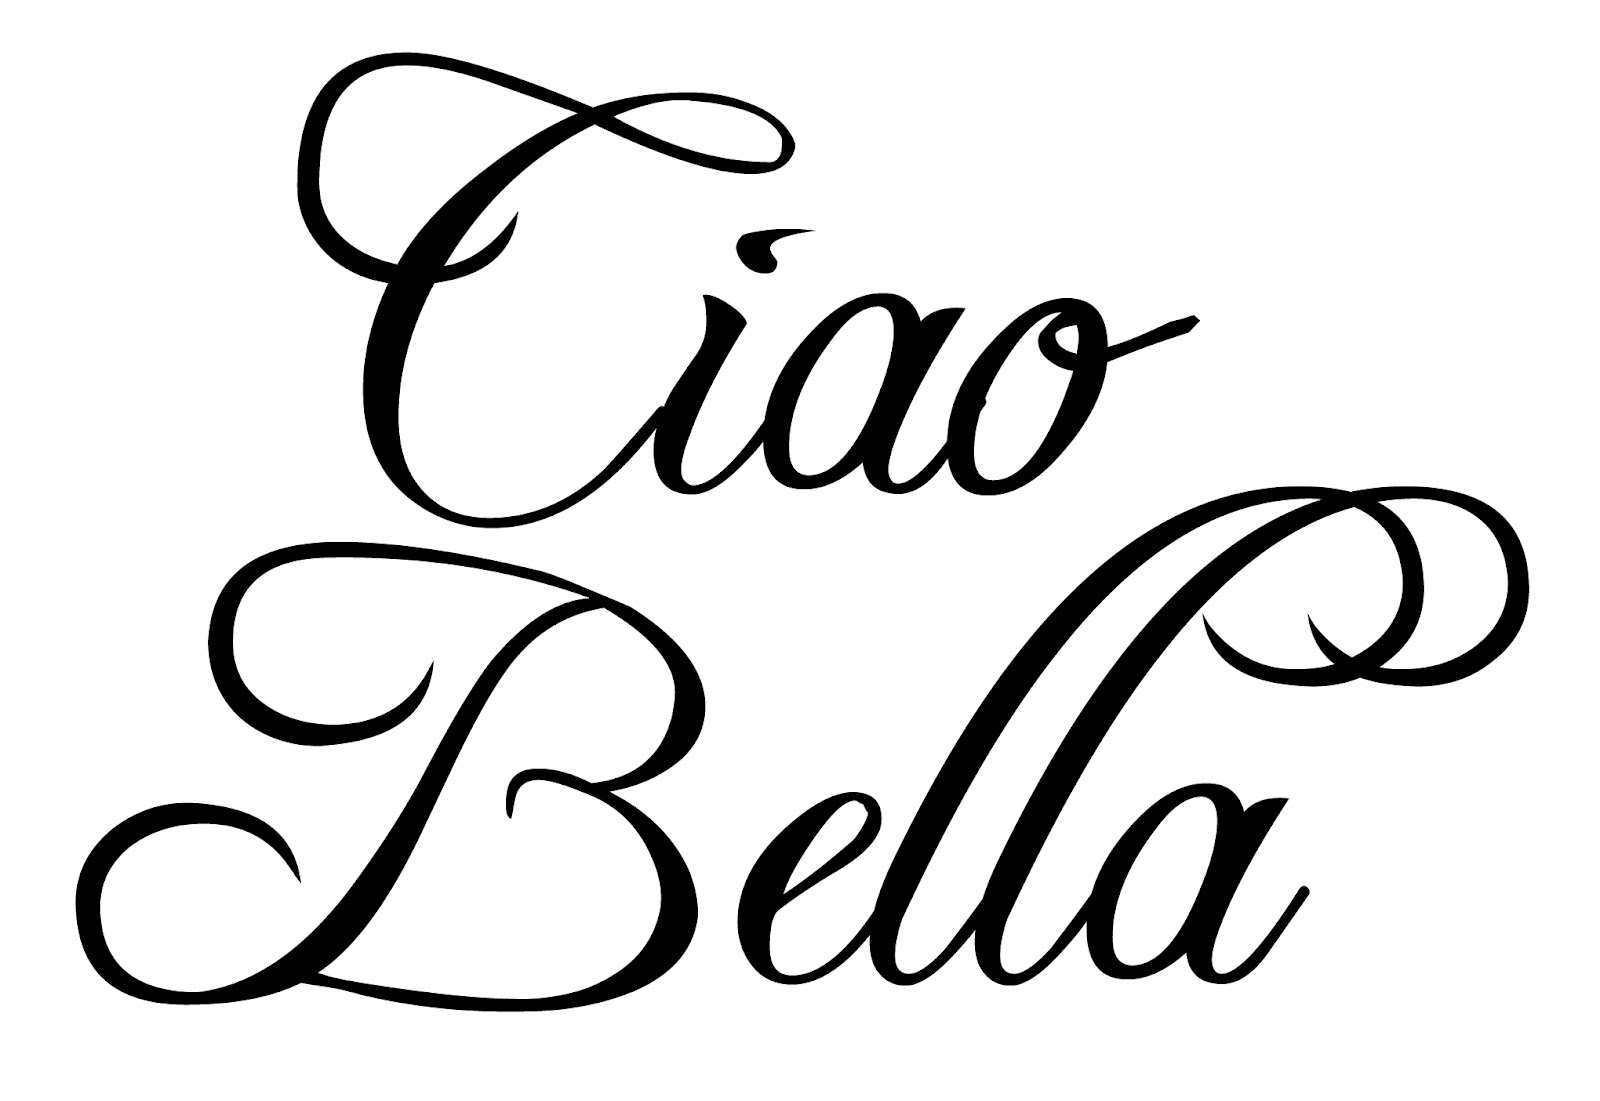 Italy clipart Clipart Italy Clipartion com Best